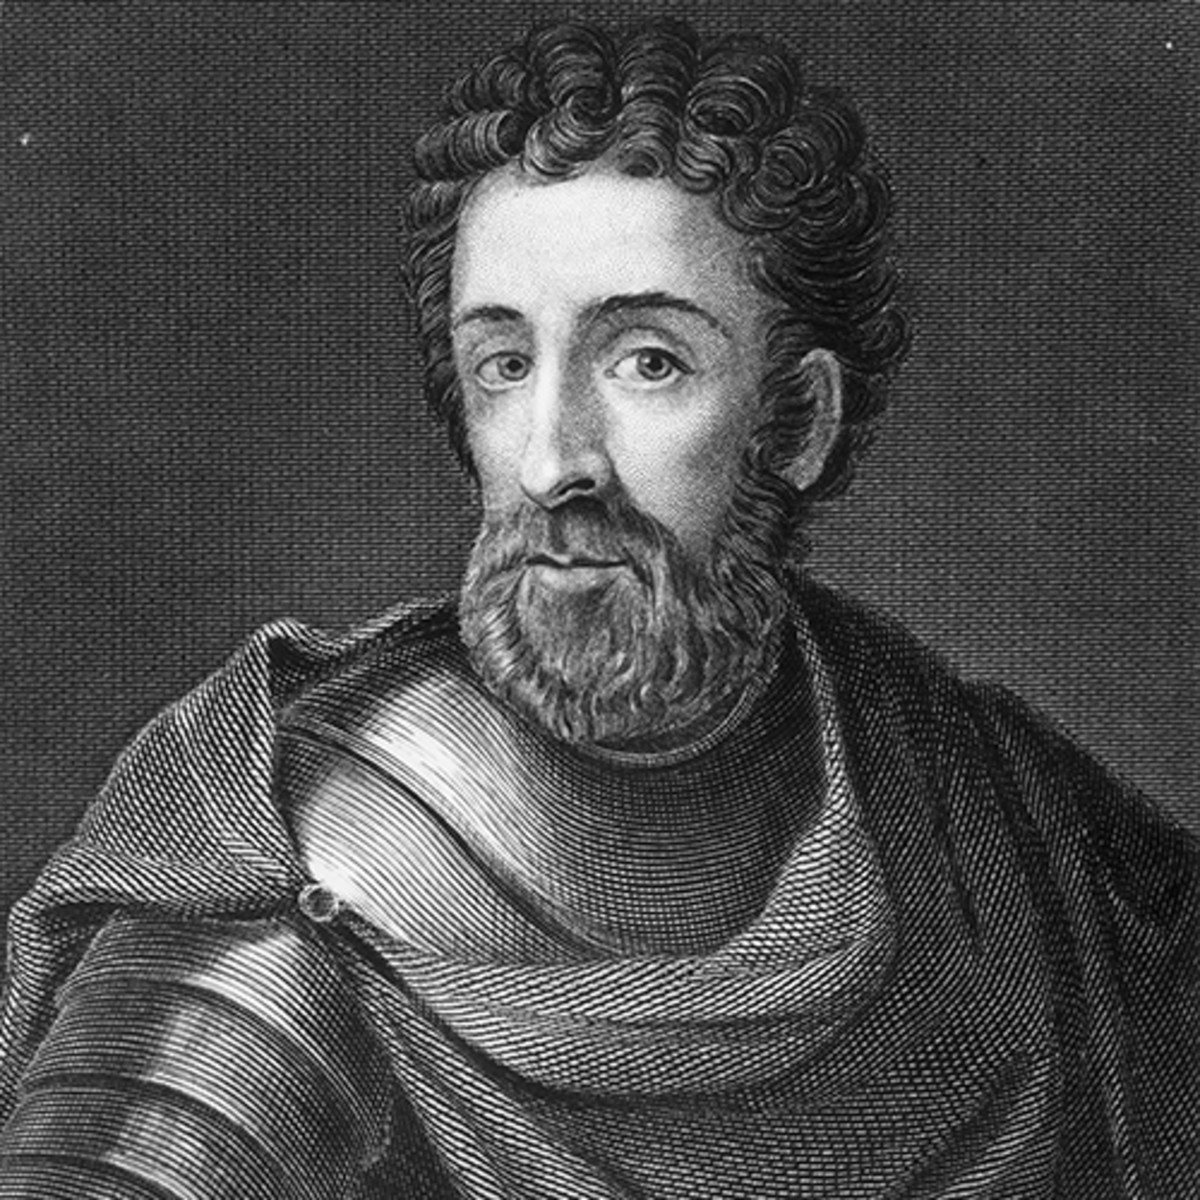 August 5, 1305: William Wallace, of Braveheart fame, captured by the British